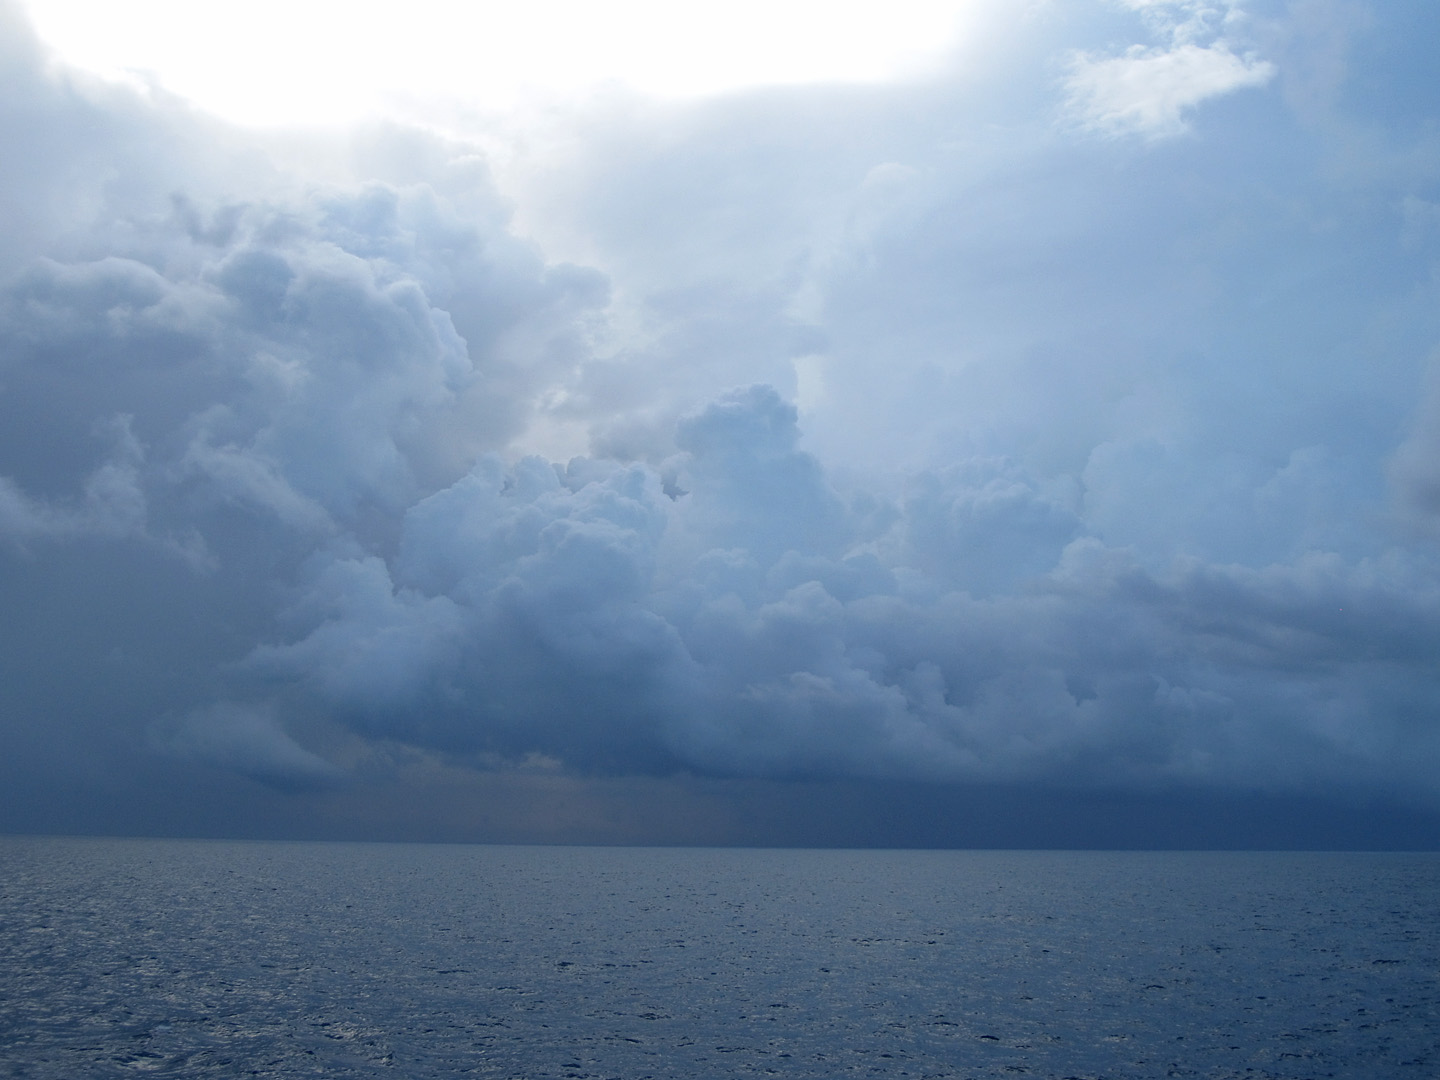 Storms over the Ocean